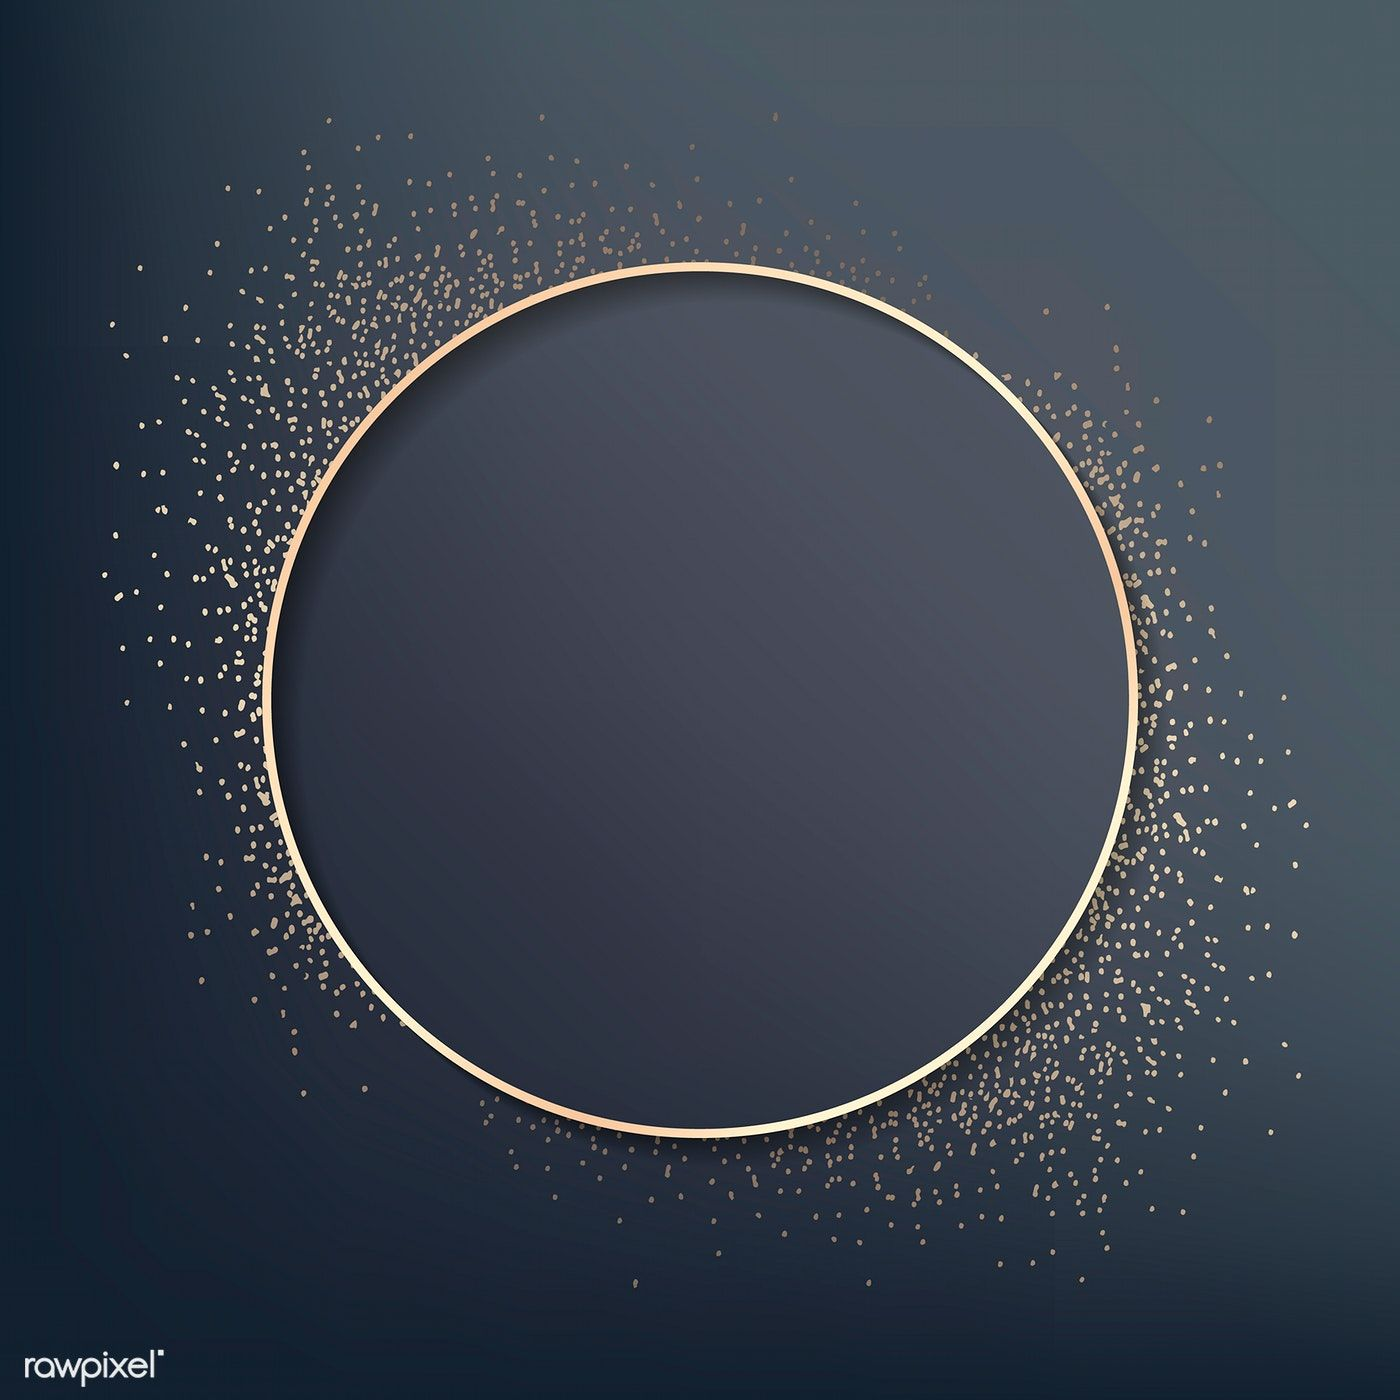 Download premium vector of Gold round badge on blue background 1400x1400